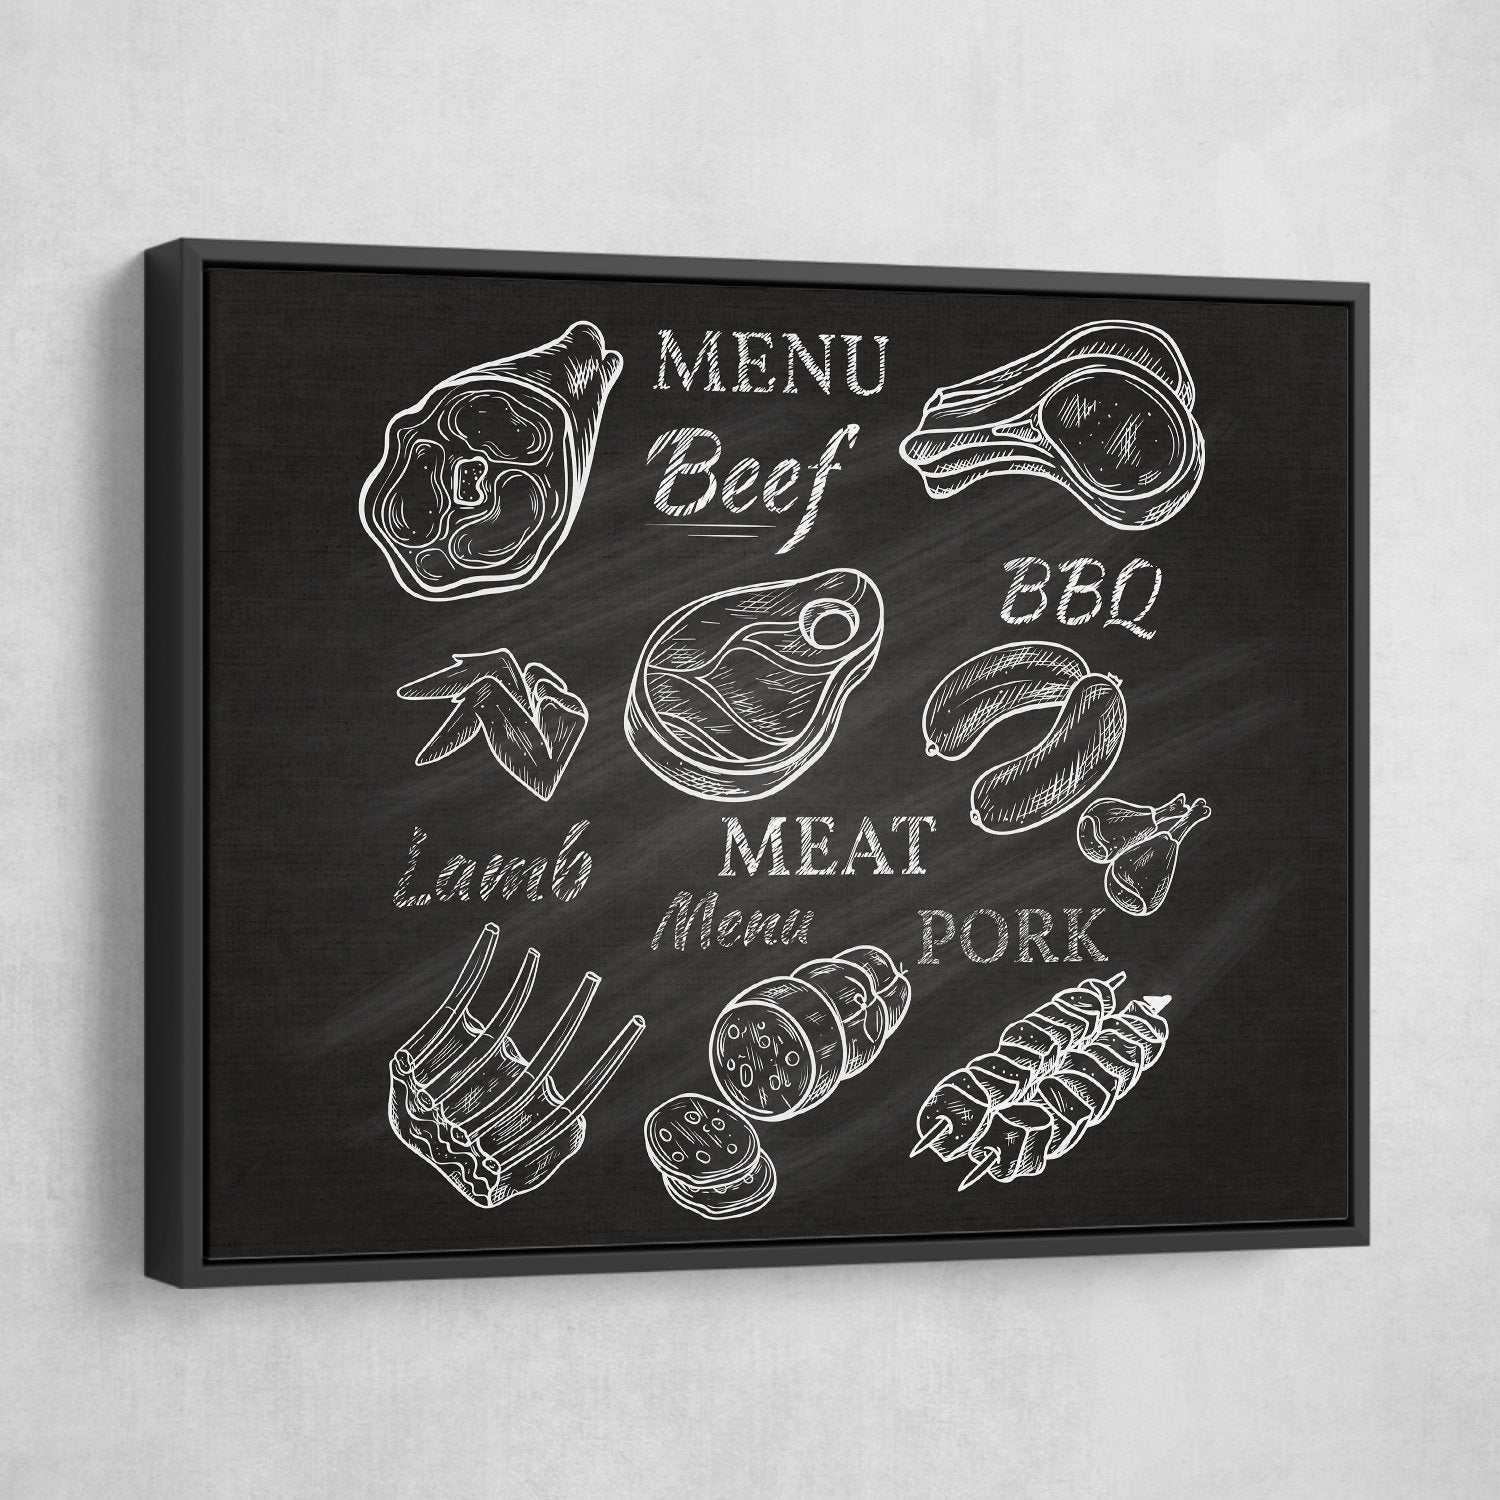 Menu wall art black frame